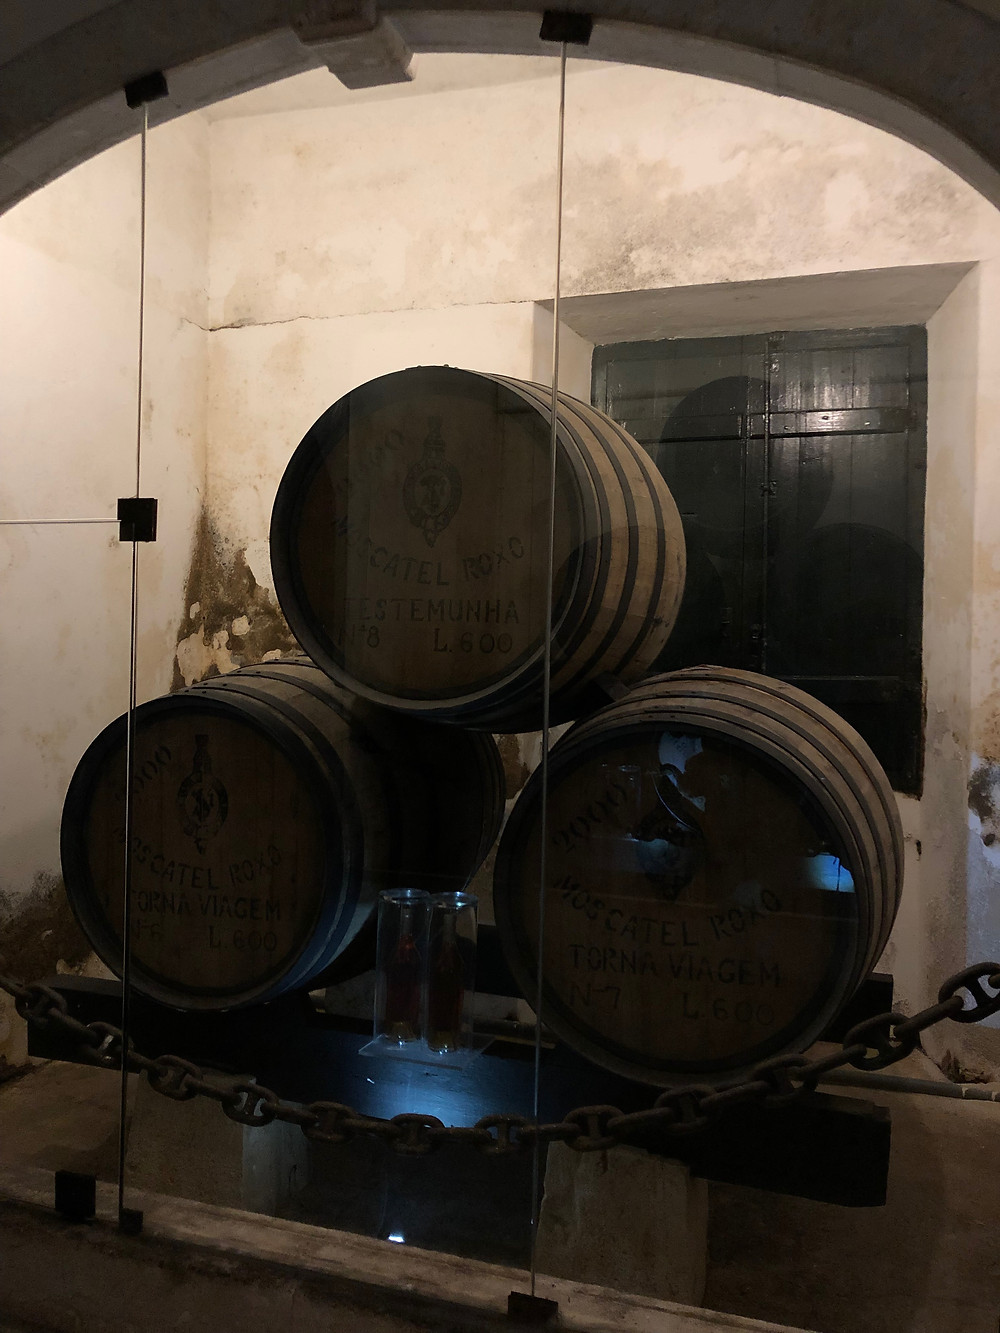 winery tour in Setubal wine region and torna viagem wine barrels of Moscatel Roxo de Setubal from José Maria da Fonseca that sailed to South and North America